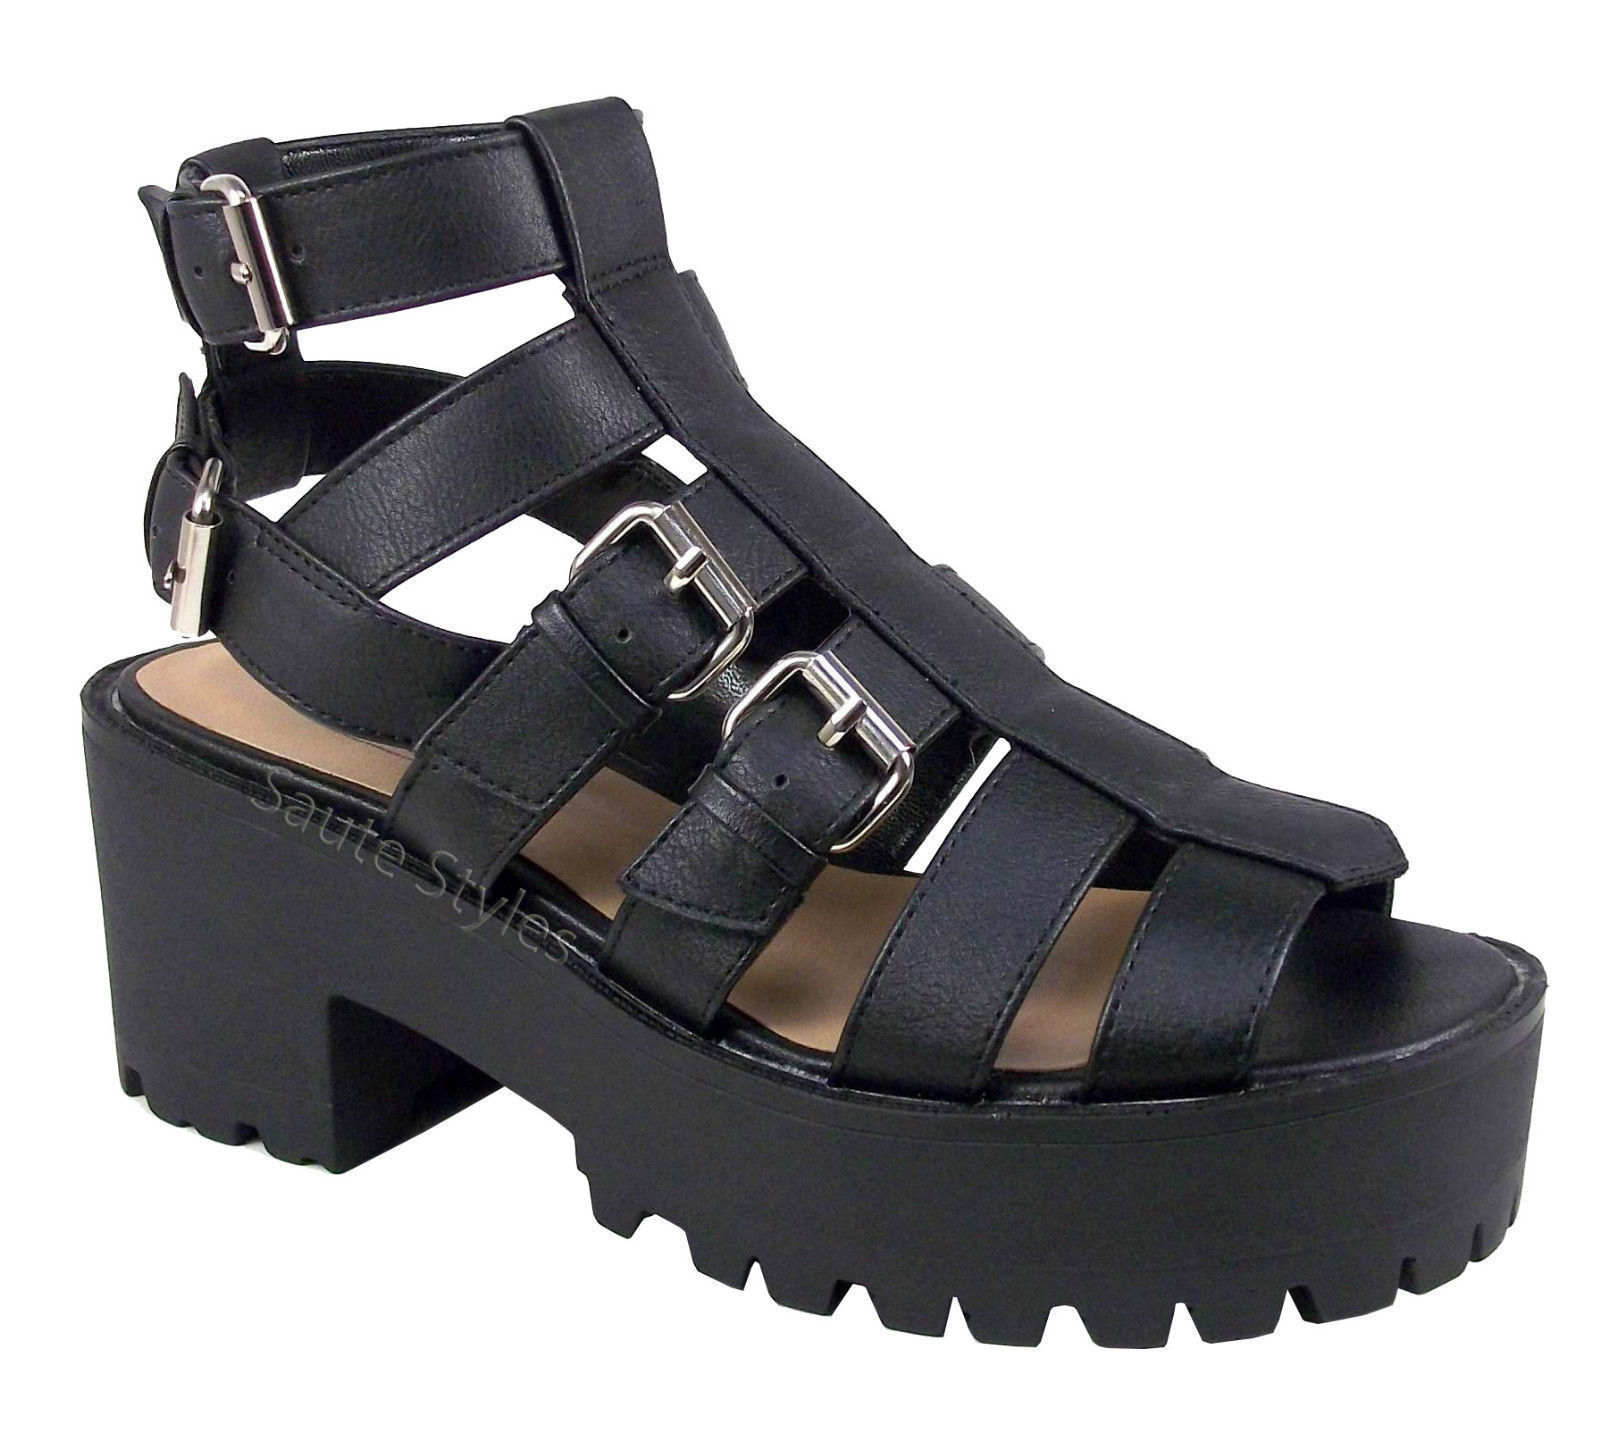 Ladies-Womens-Cut-Out-Gladiator-Chunky-Heel-Strappy-Platform-Sandals-Shoes-Size